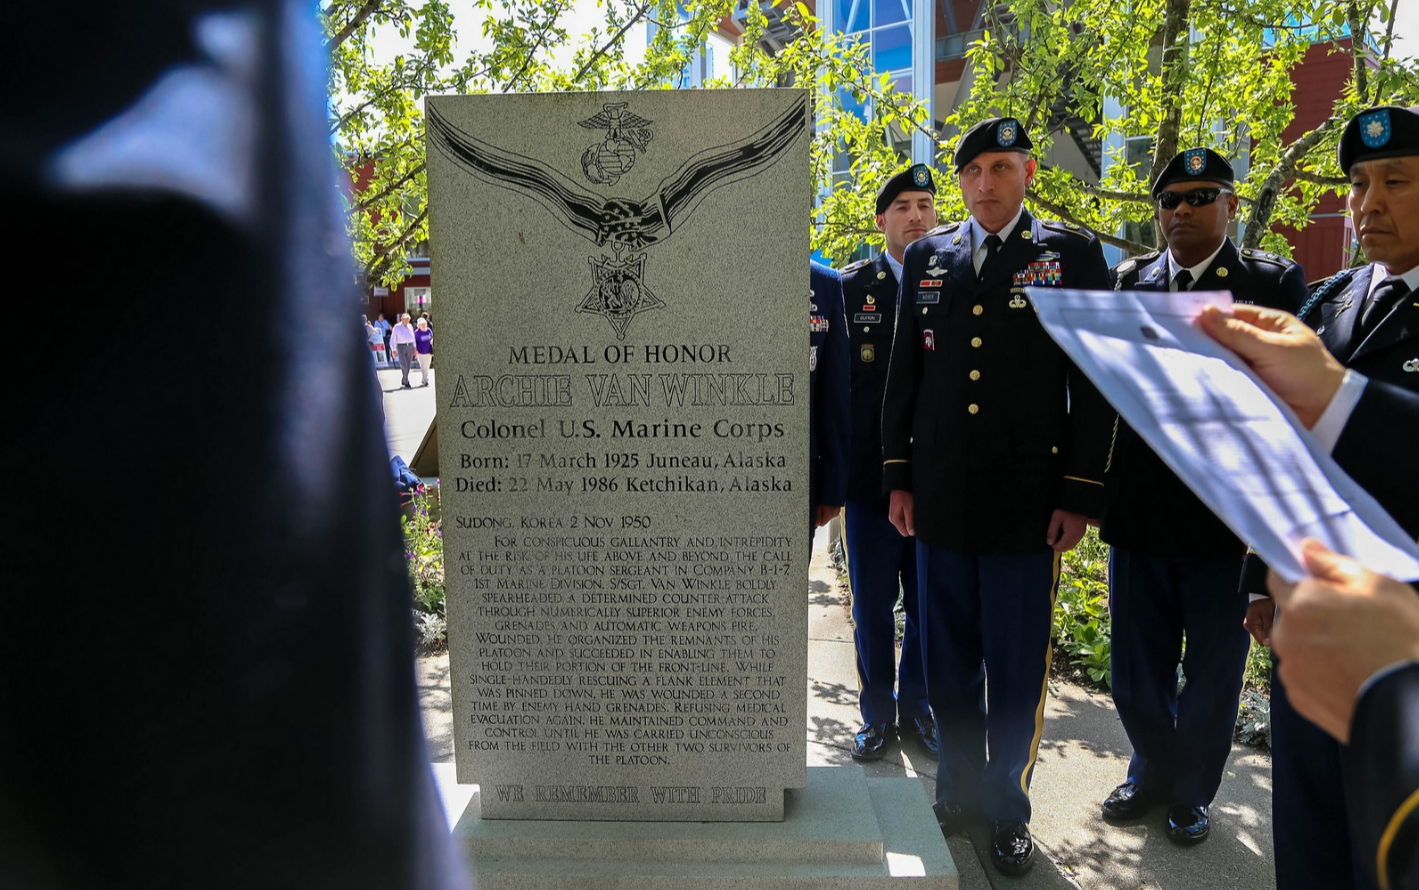 Members of the 103rd Civil Support Team pay homage to Medal of Honor recipient at his granite memorial in downtown Juneau. Image-National Guard